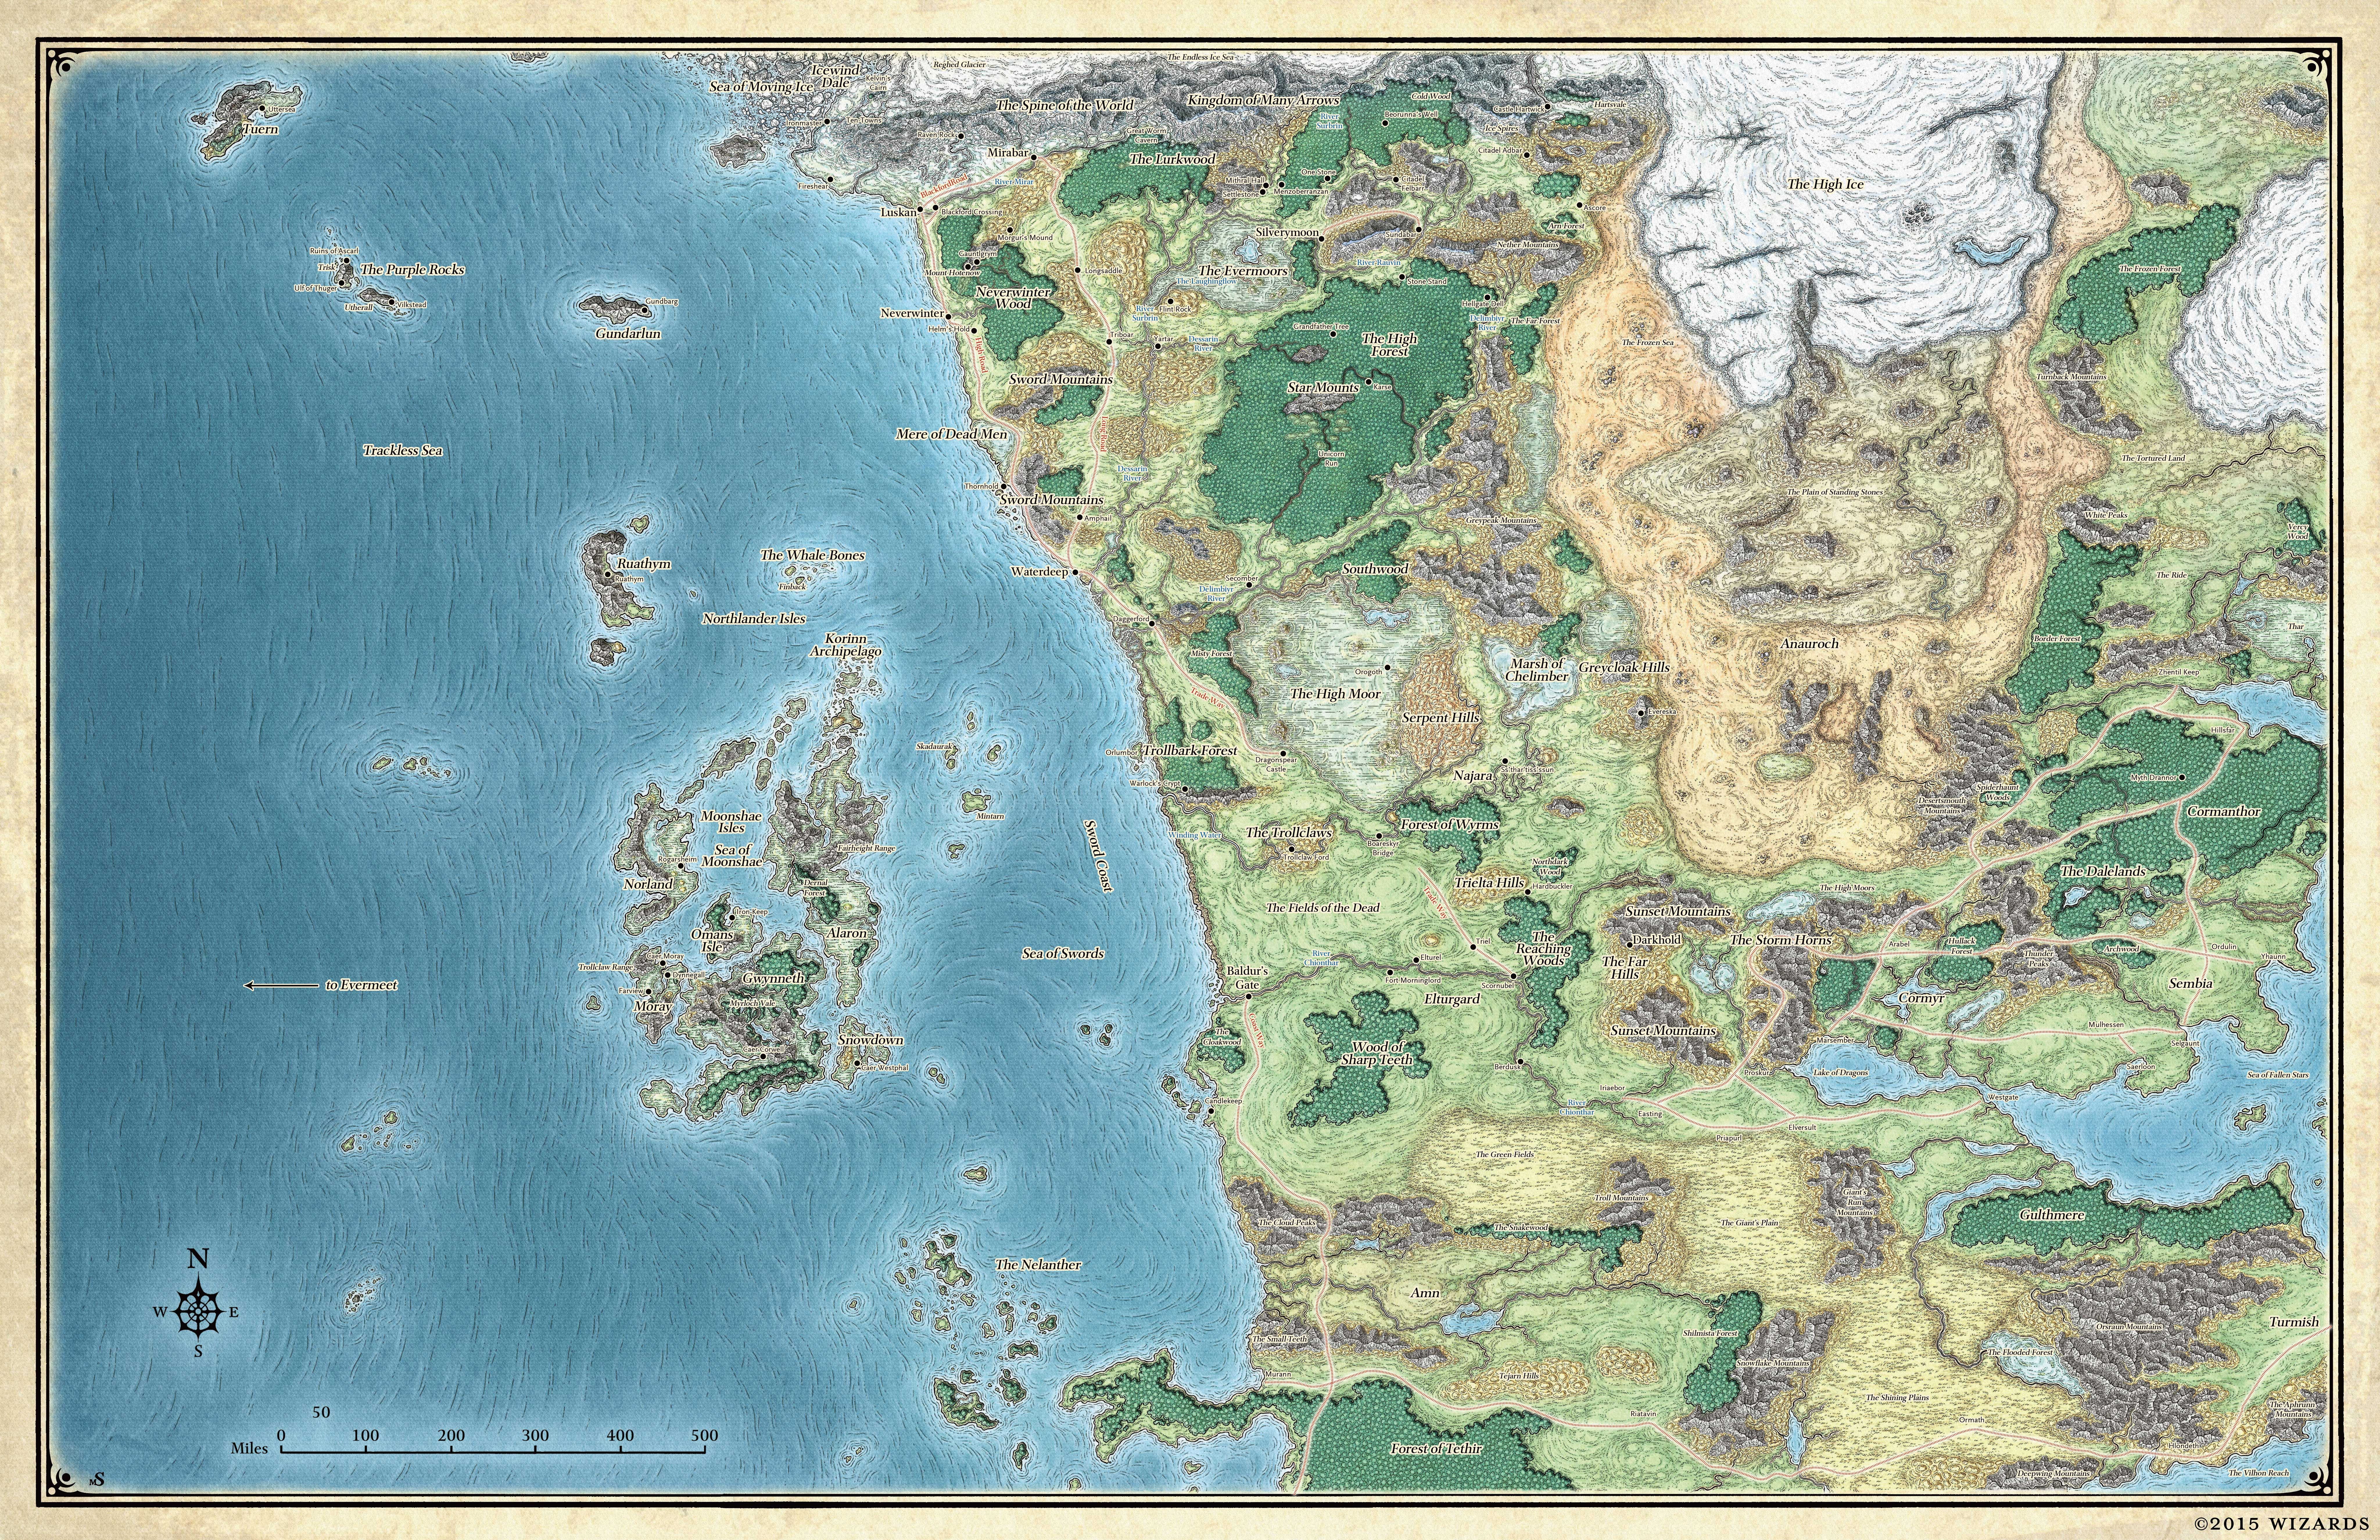 Faerun Forgotten Realms Wiki Fandom Powered By Wikia Dungeons And Dragons Map Fantasy Map